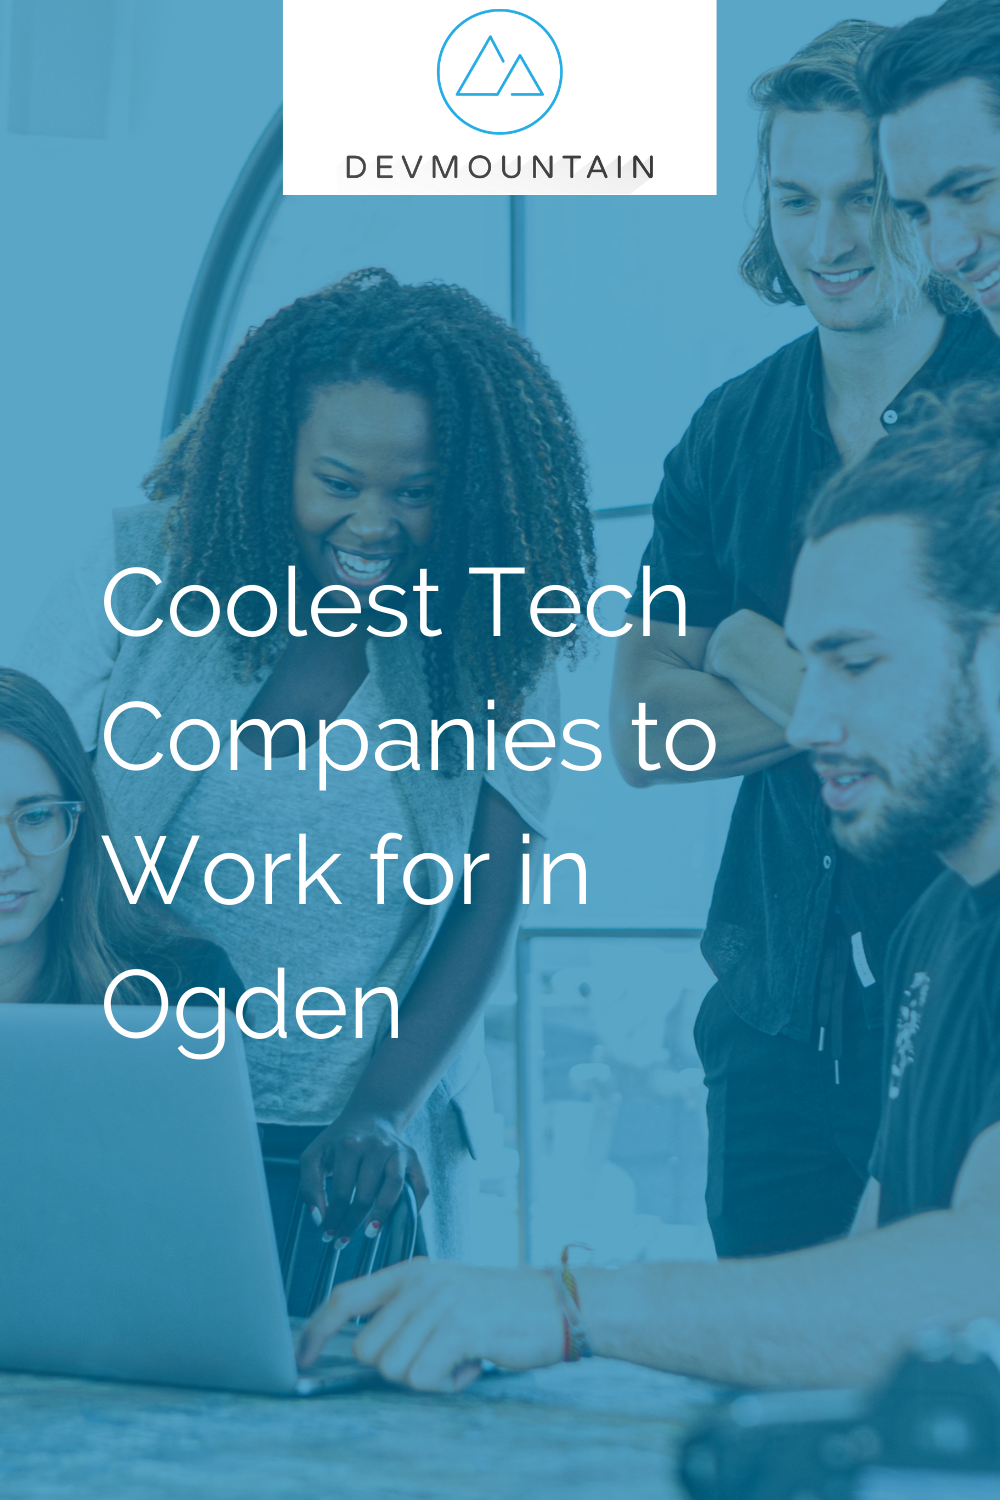 Coolest Tech Companies to Work for in Ogden